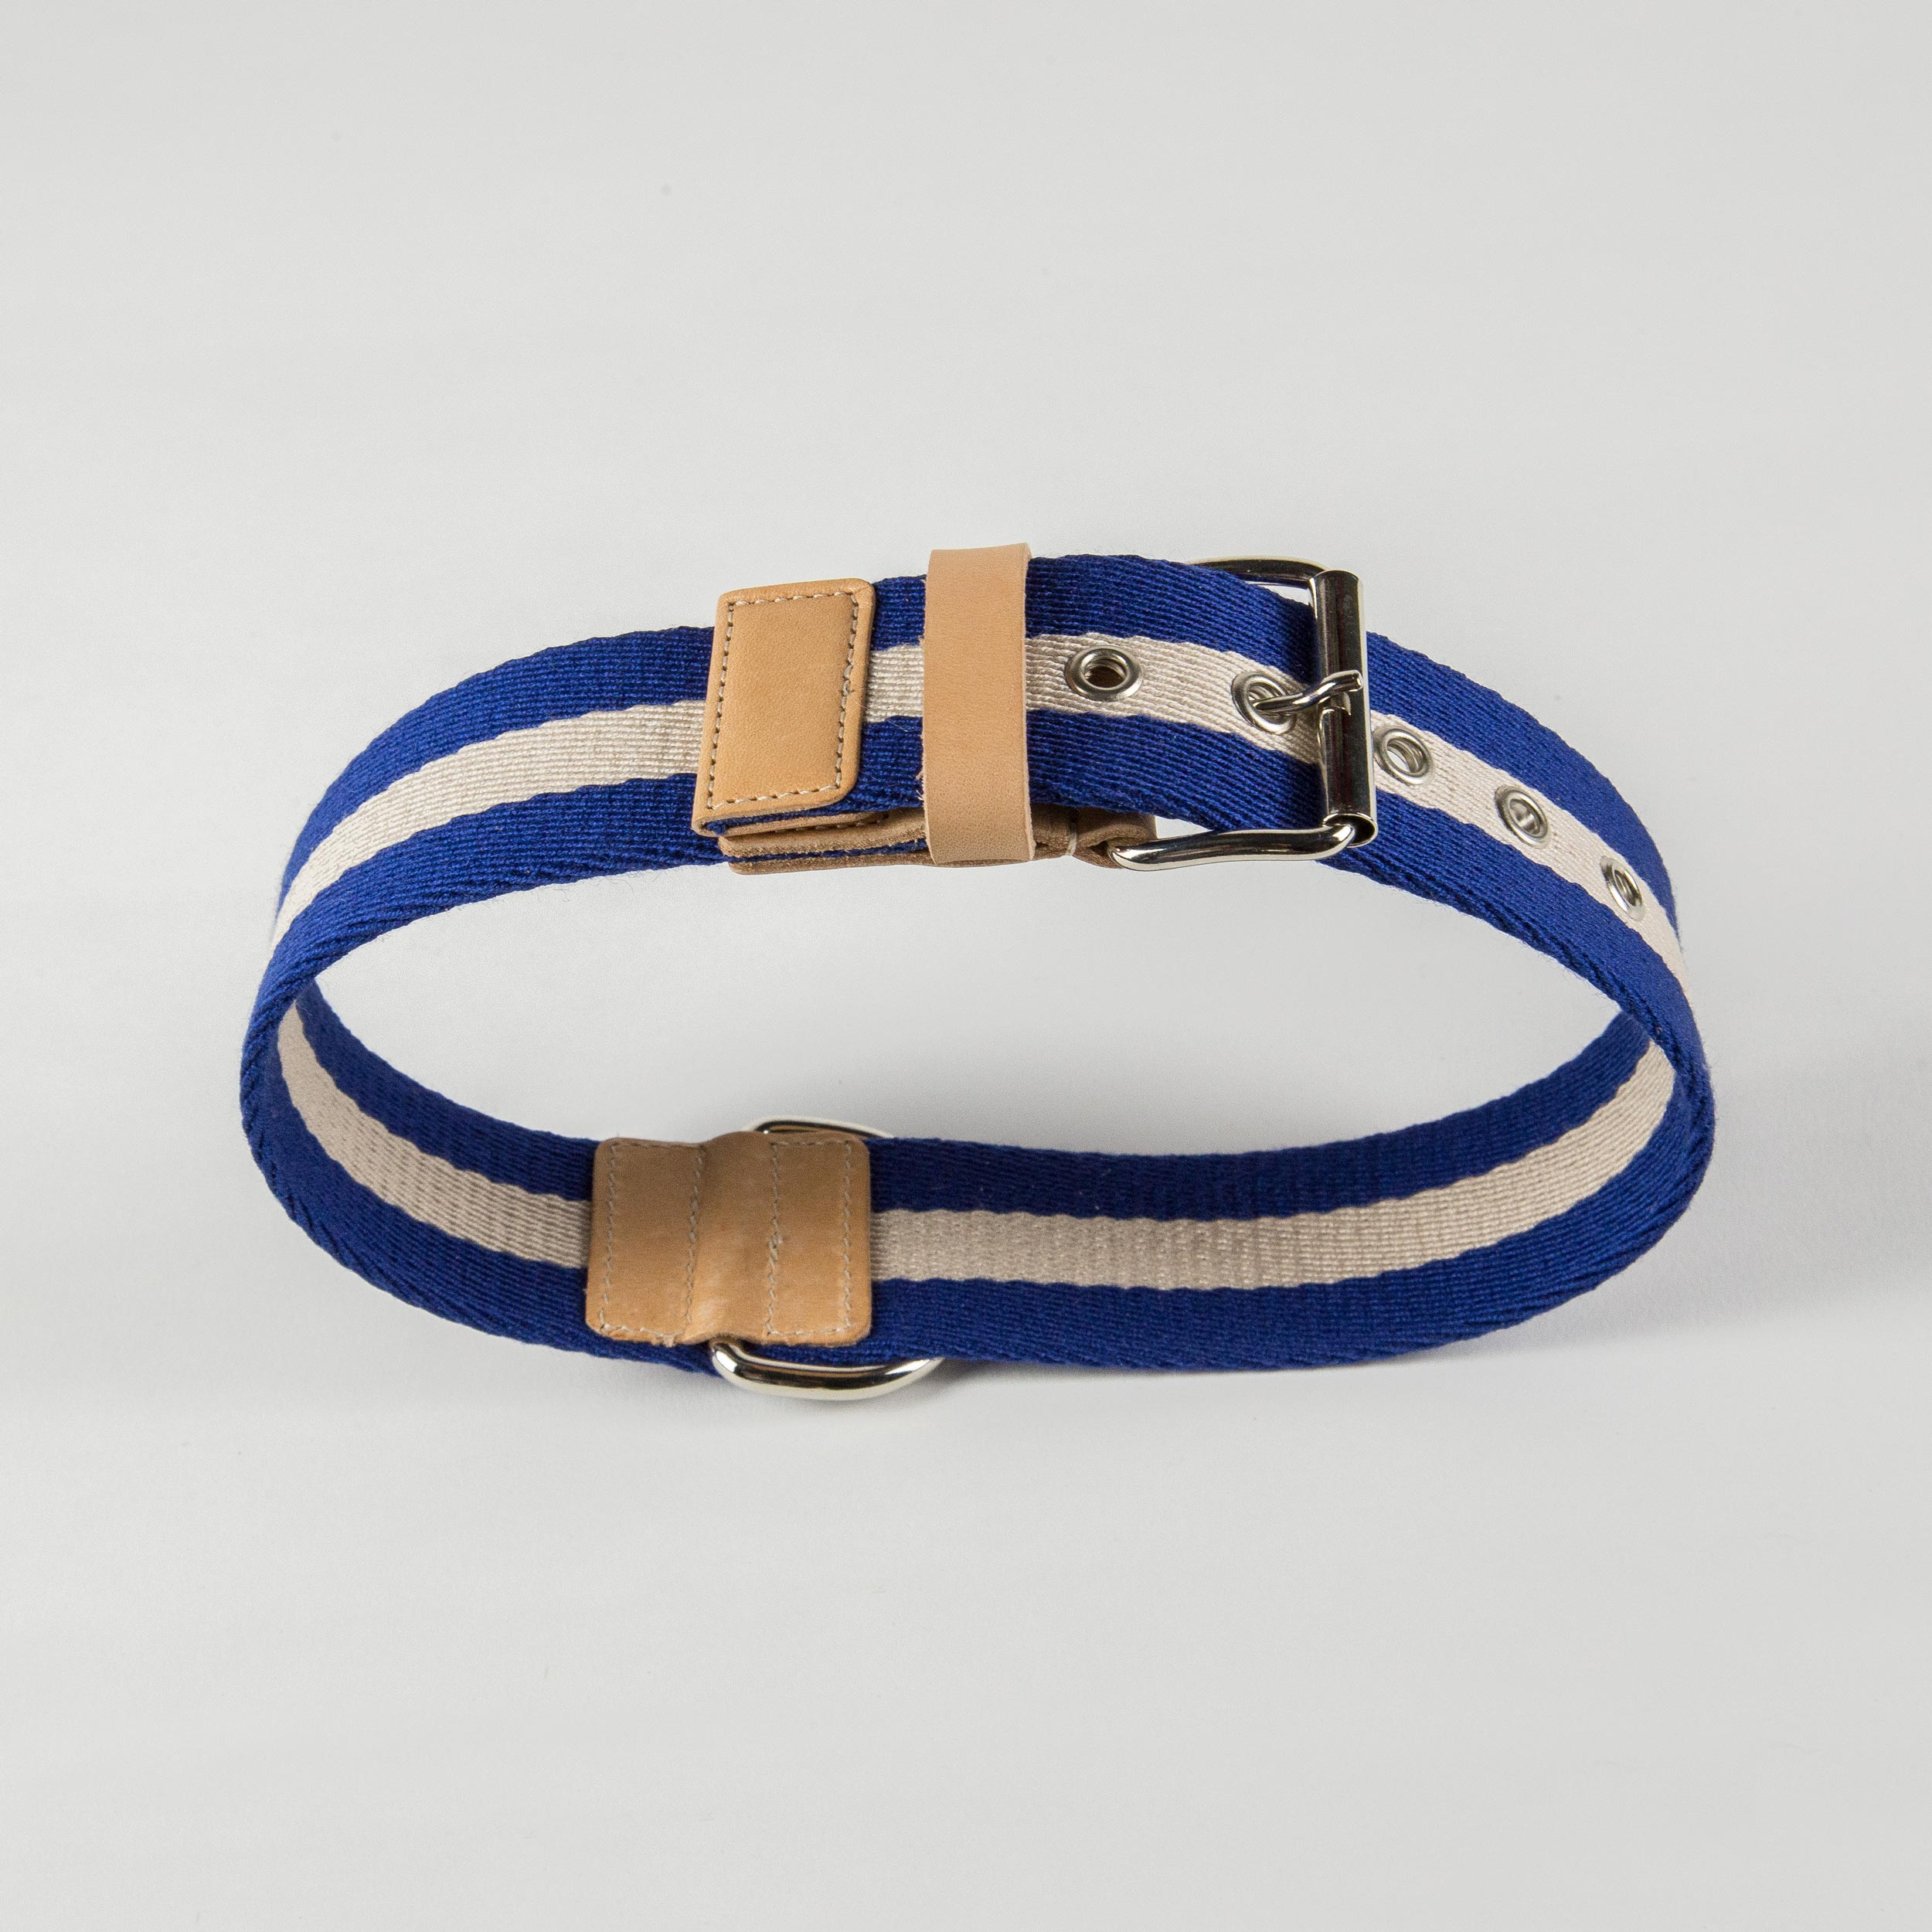 collar for dogs in blue/cream fabric and leather